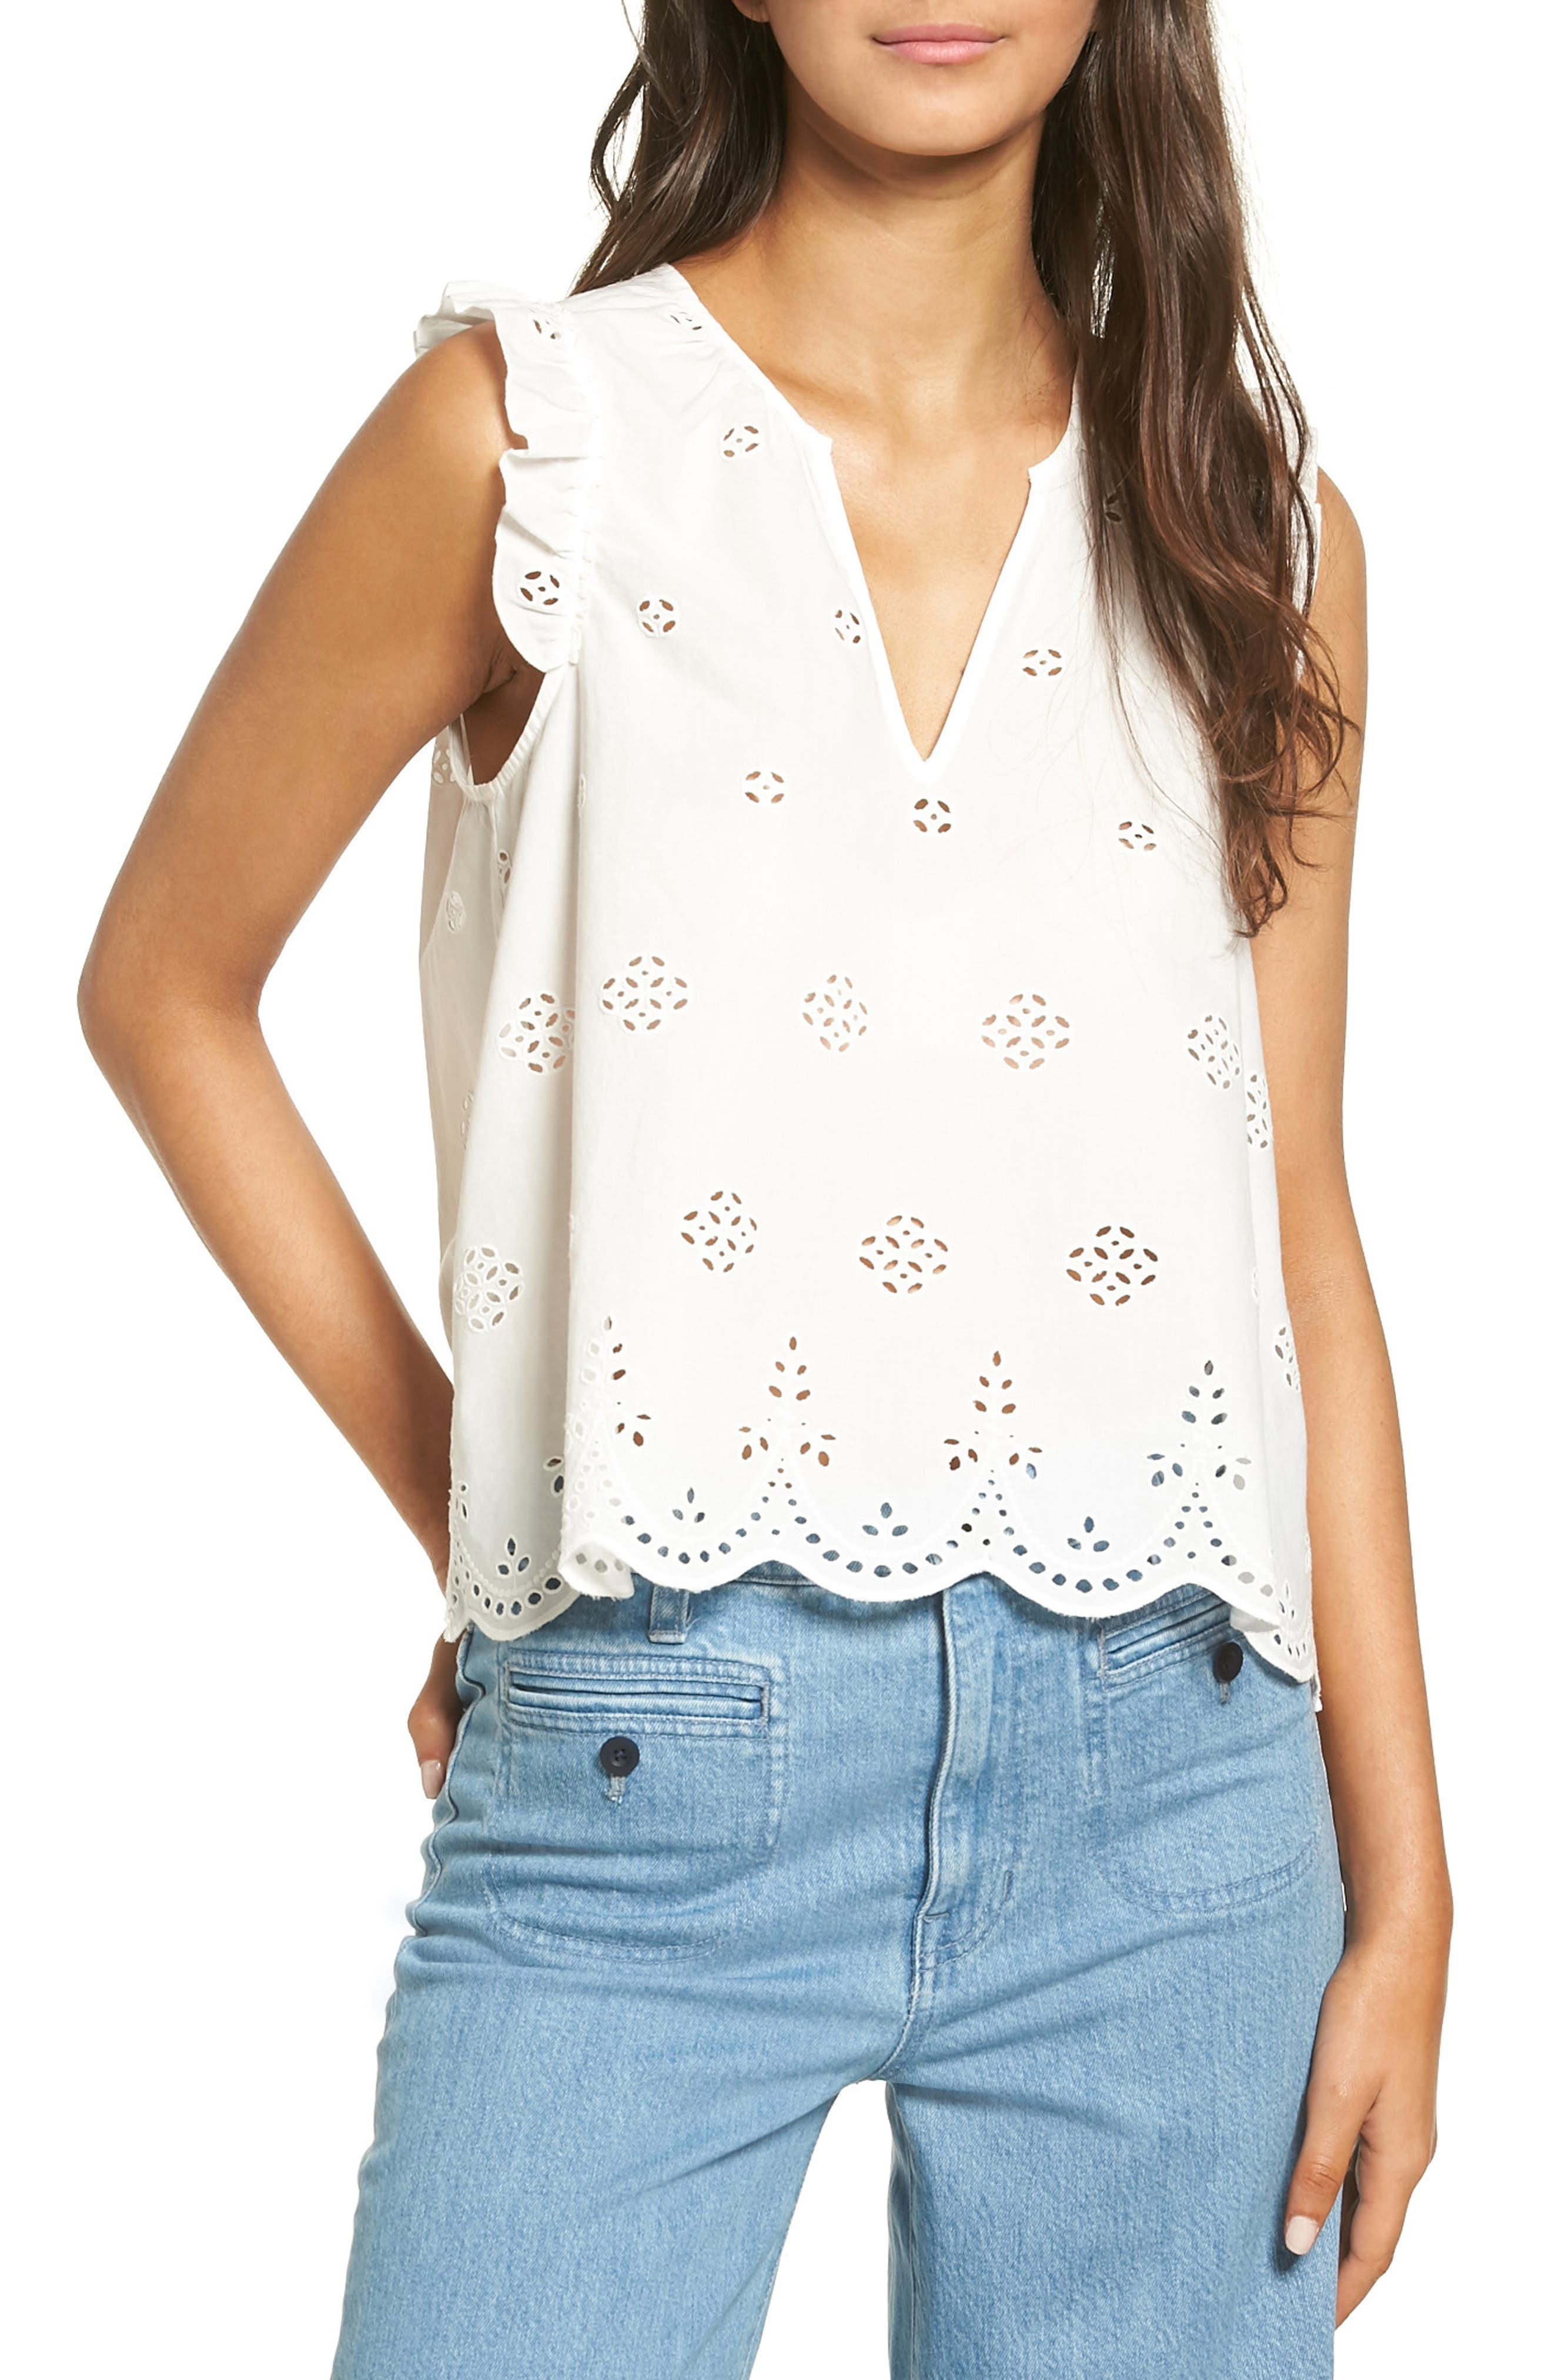 Alternate Image 1 Selected - Madewell Eyelet Garden Sleeveless Top